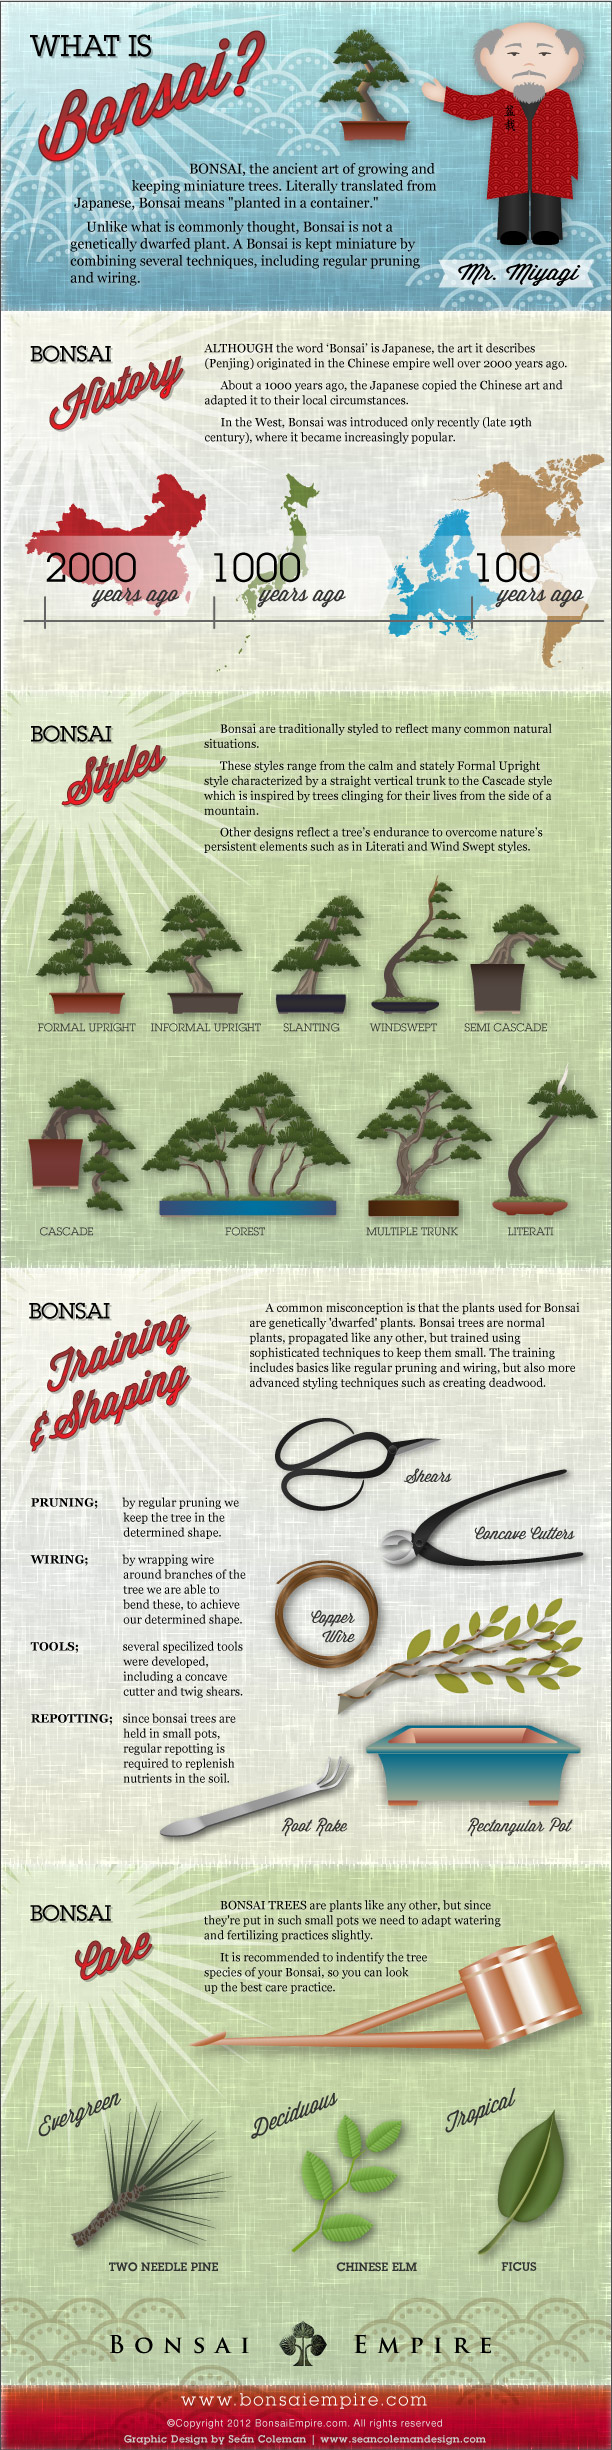 Bonsai infographic; what is bonsai and how do I start?